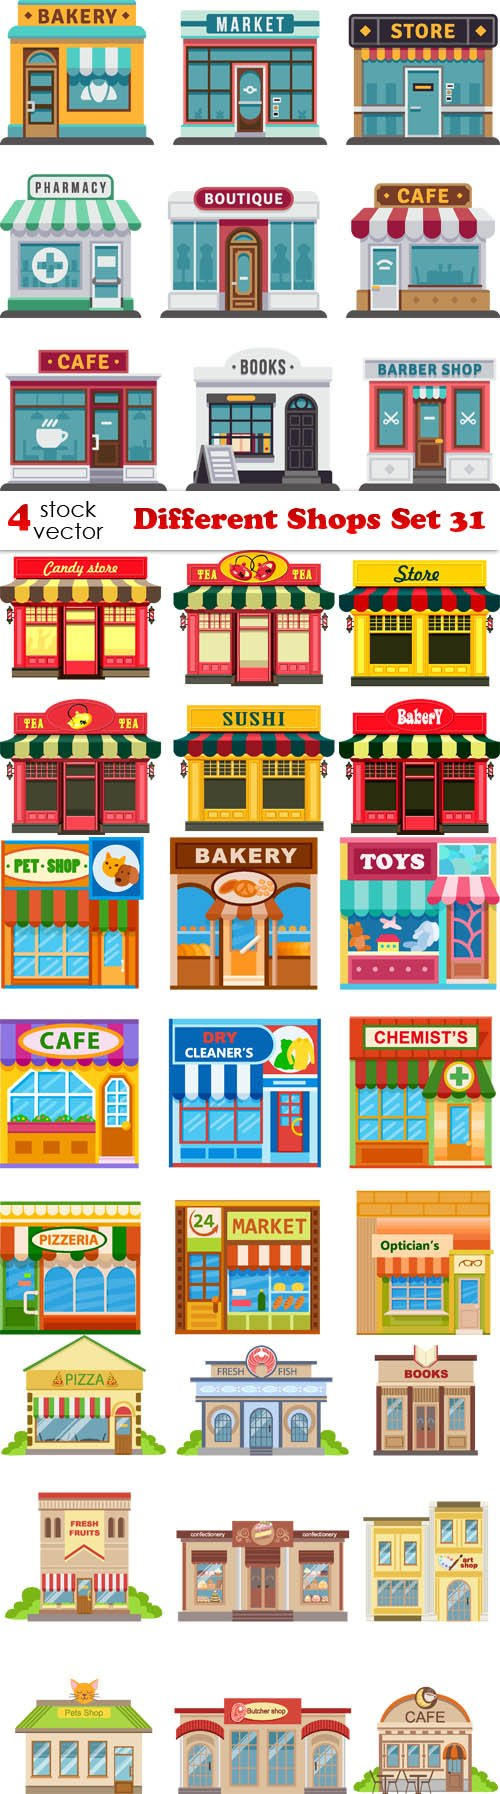 Vectors - Different Shops Set 31